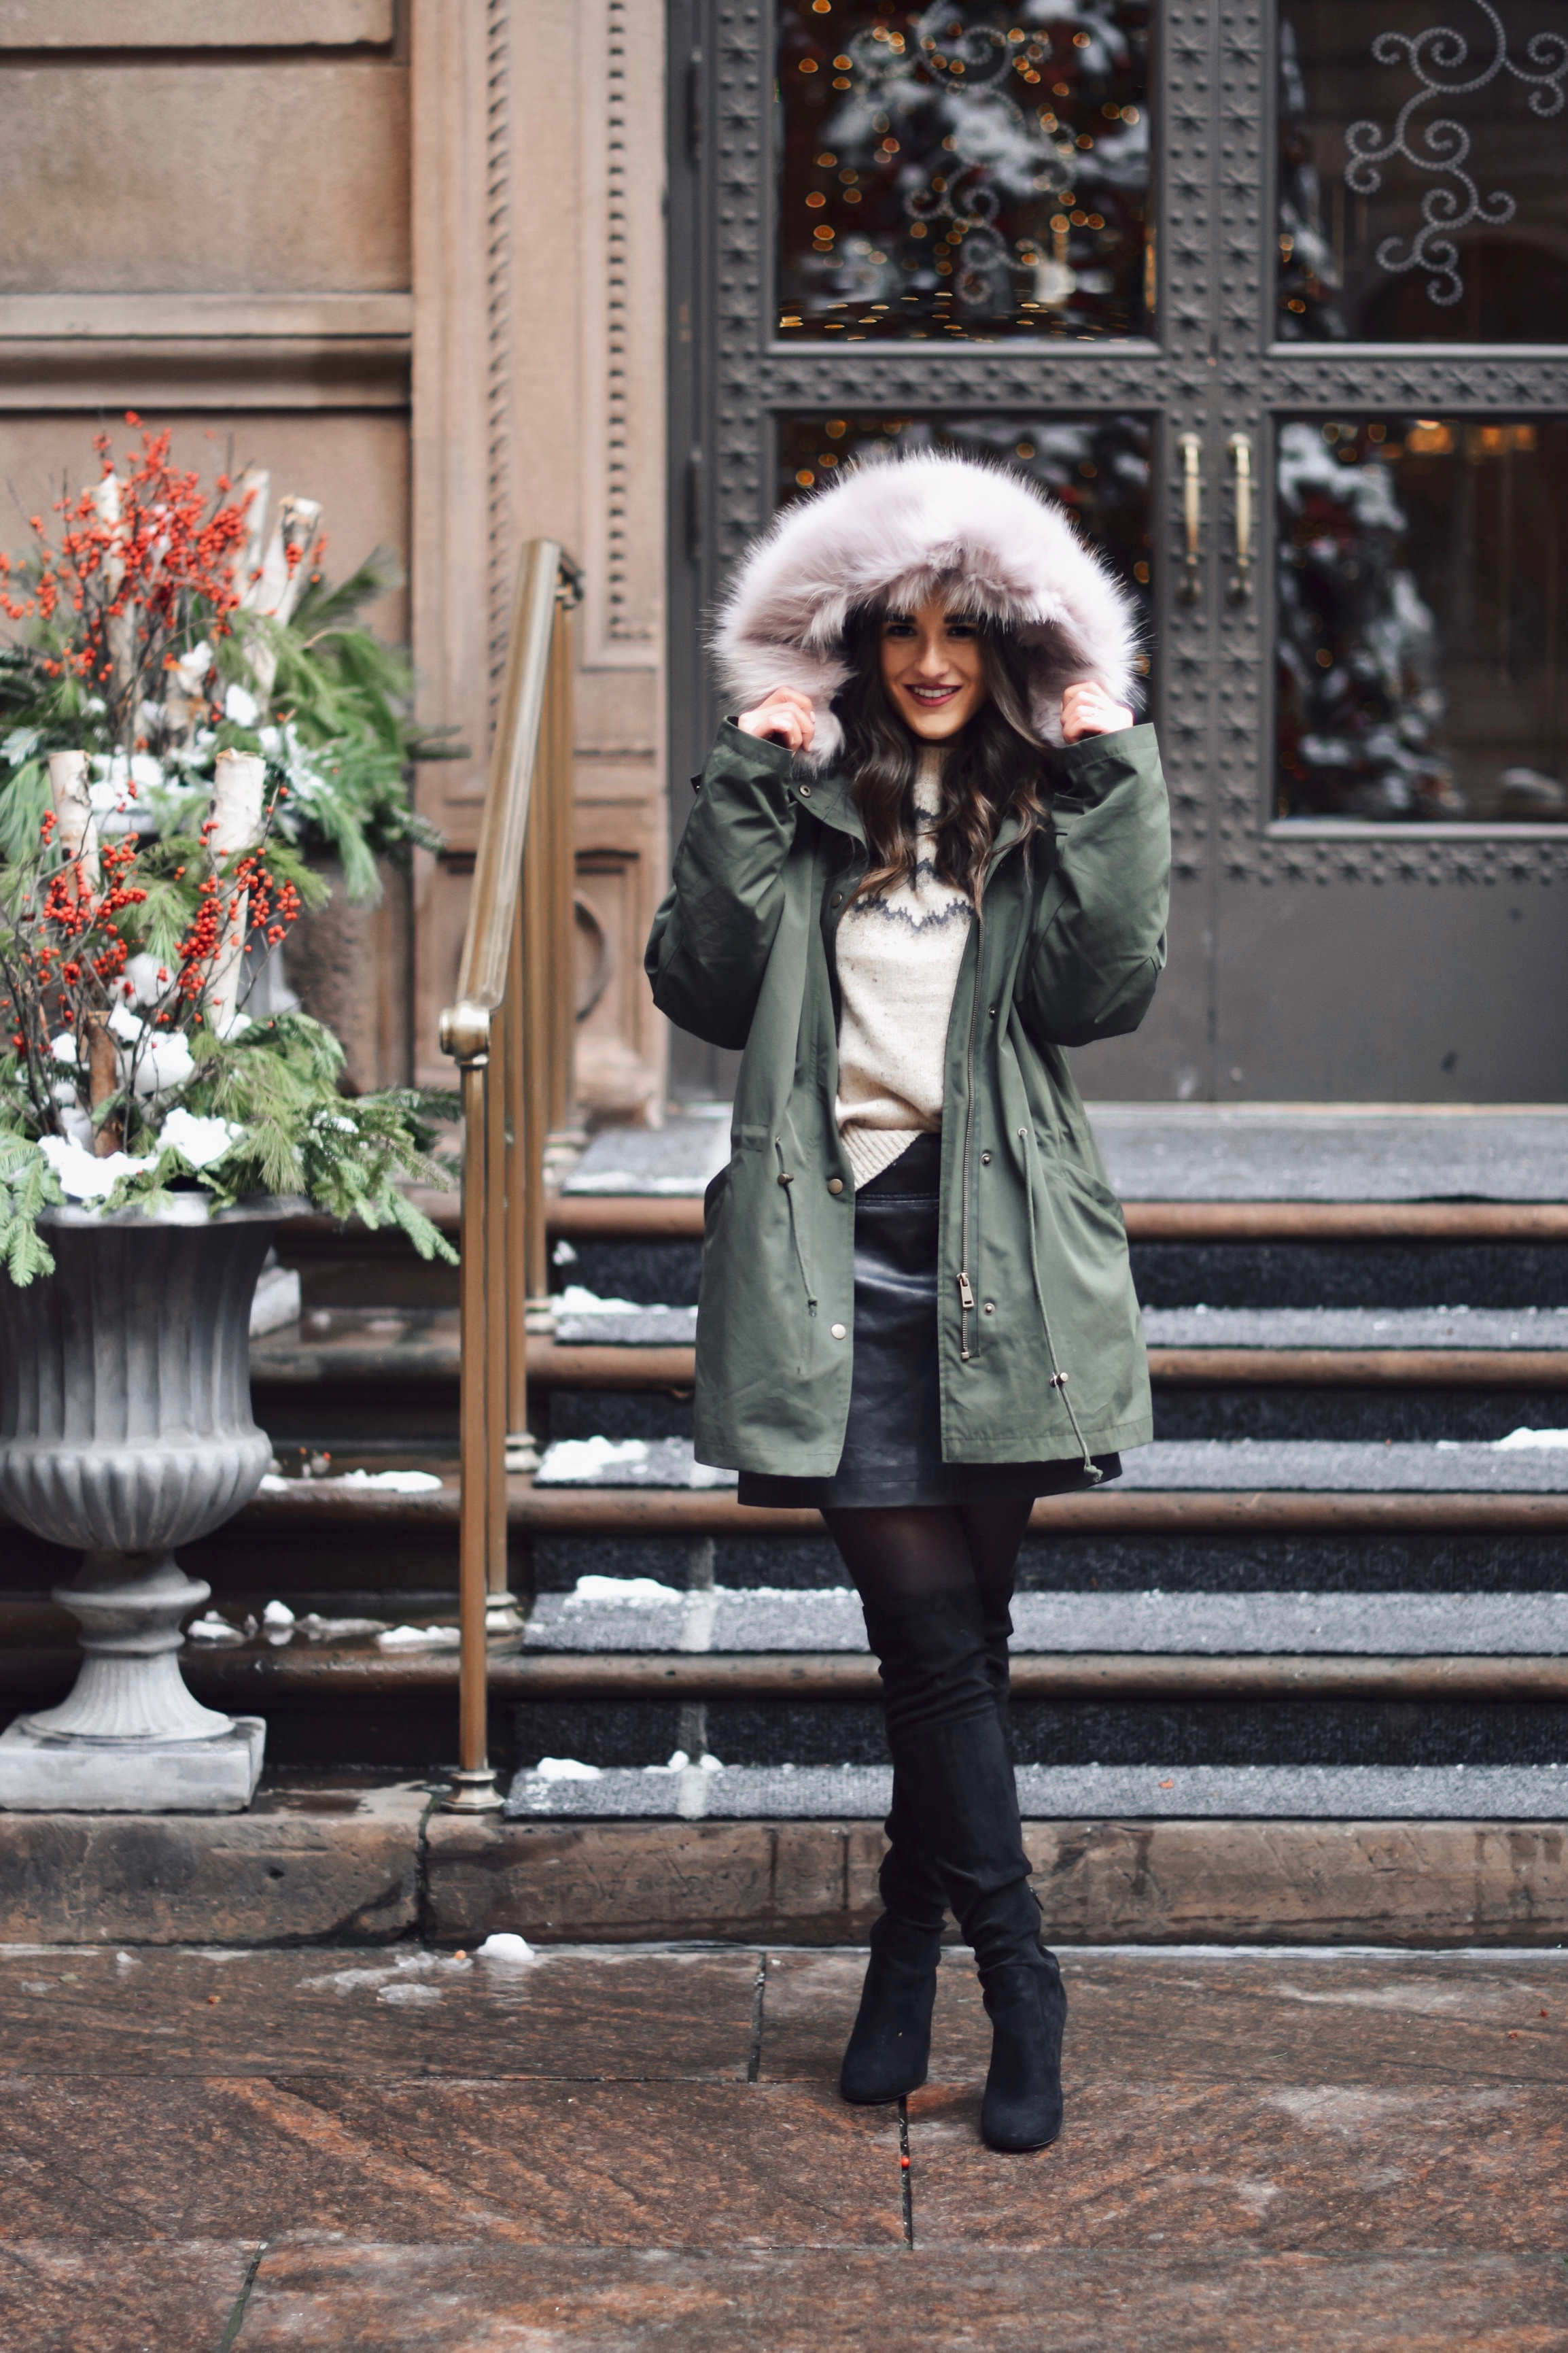 11 Of My Favorite Business Minded Quotes Fur Hooded Parka Cashmere Sweater Esther Santer Fashion Blog NYC Street Style Blogger Outfit OOTD Trendy Vince Urban Outfitters Cozy Winter Shopping Wear Jacket Coat  Cold Weather OTK Boots Buy Pleather Skirt.jpg